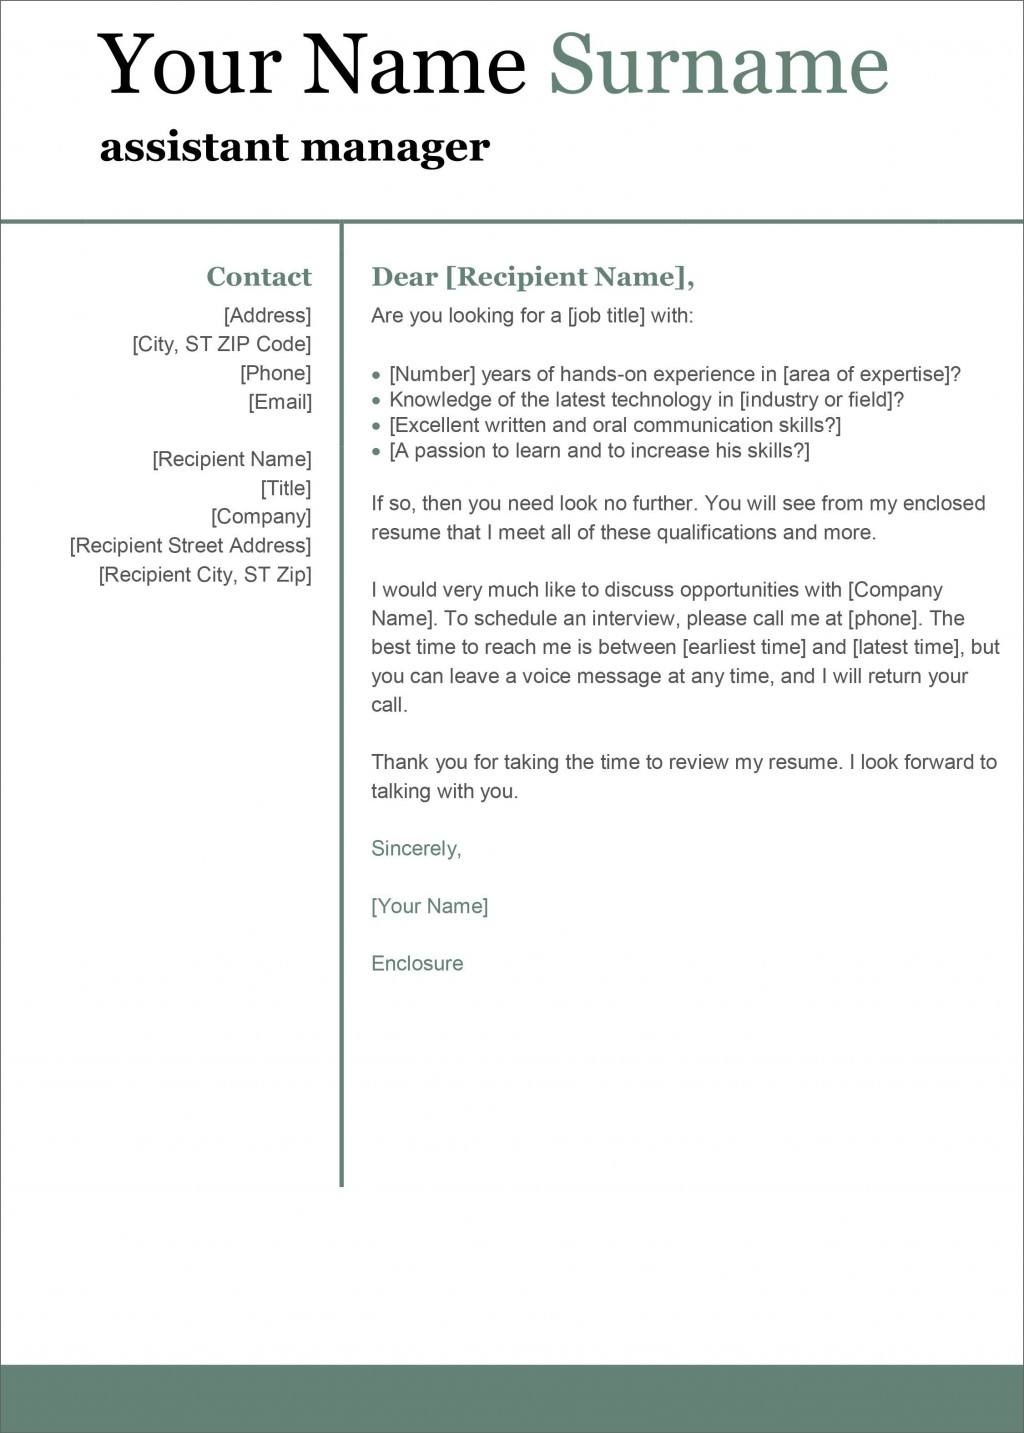 006 Beautiful Microsoft Resume Cover Letter Template Free High Definition Large